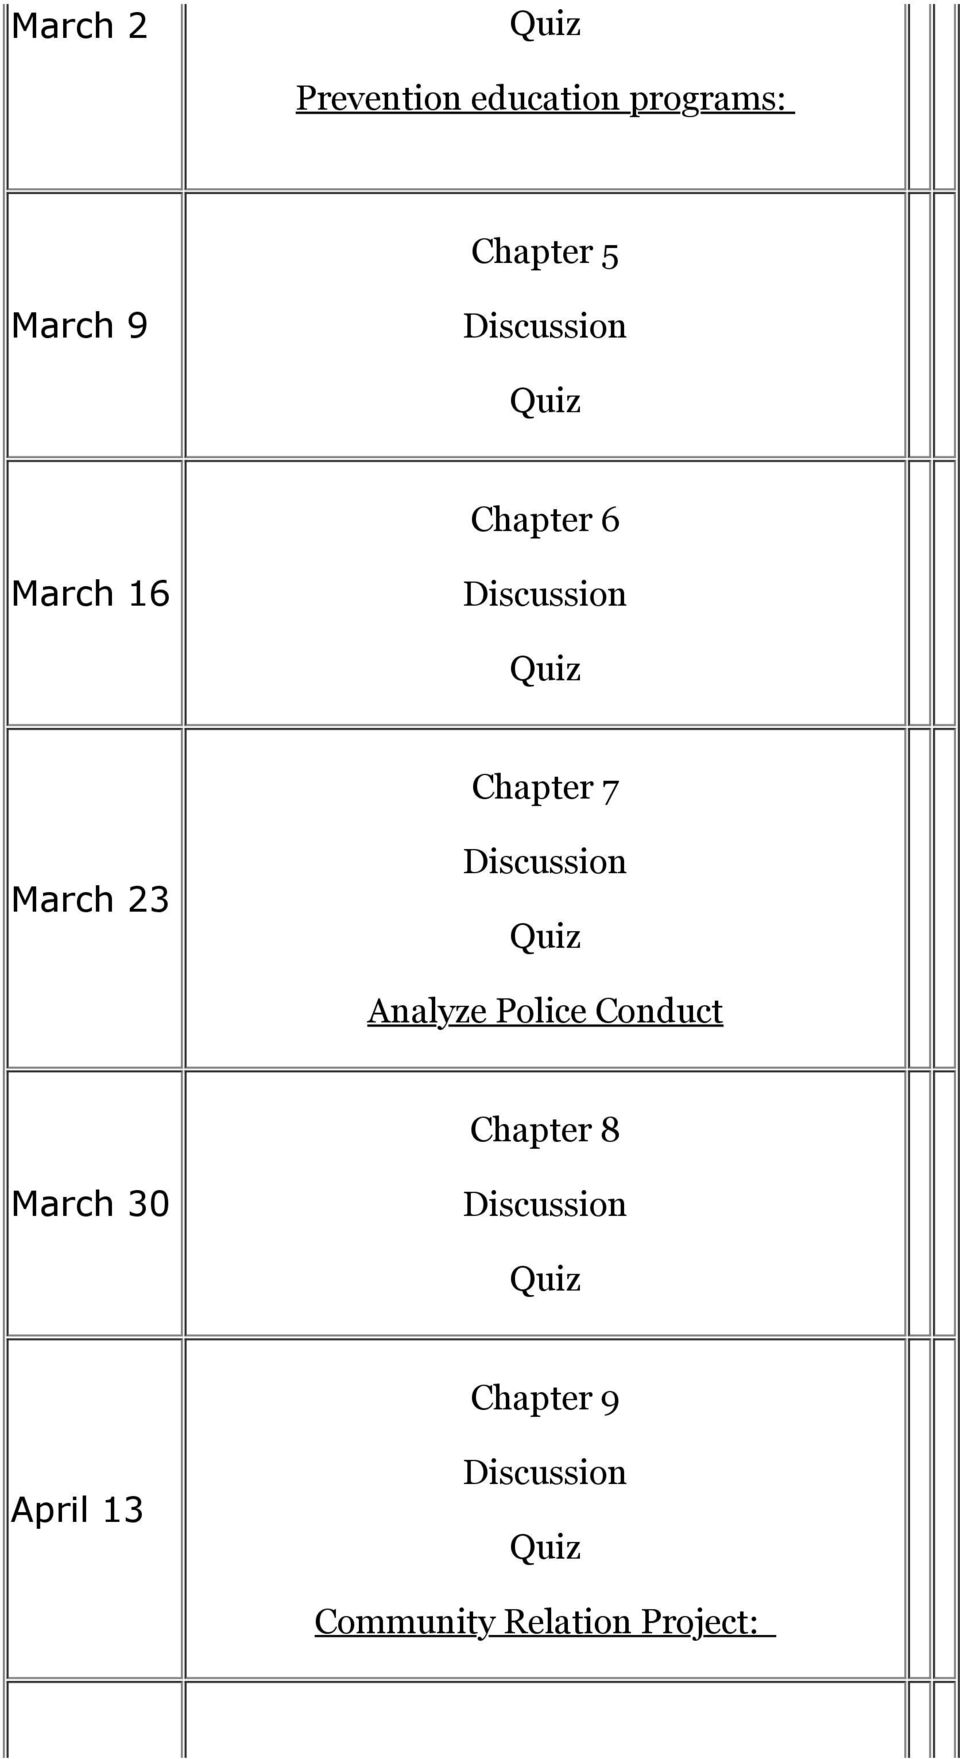 7 March 23 Analyze Police Conduct Chapter 8